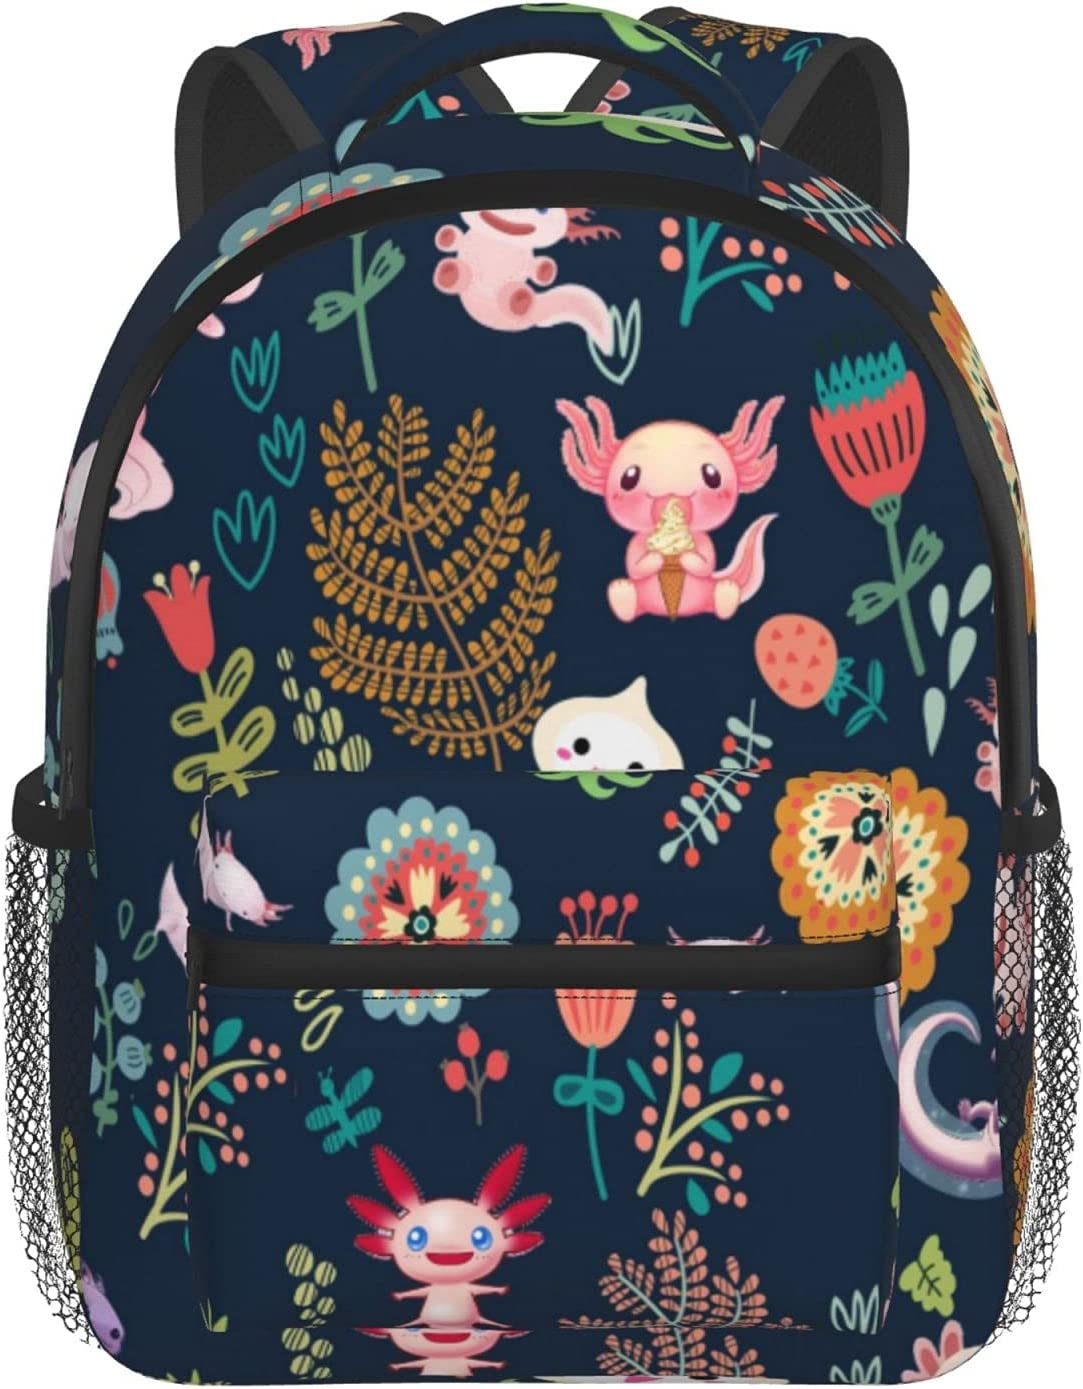 LIK EPOCH Special price for a limited time Axolotl kids backpack printing t 3D children's fashion Max 84% OFF